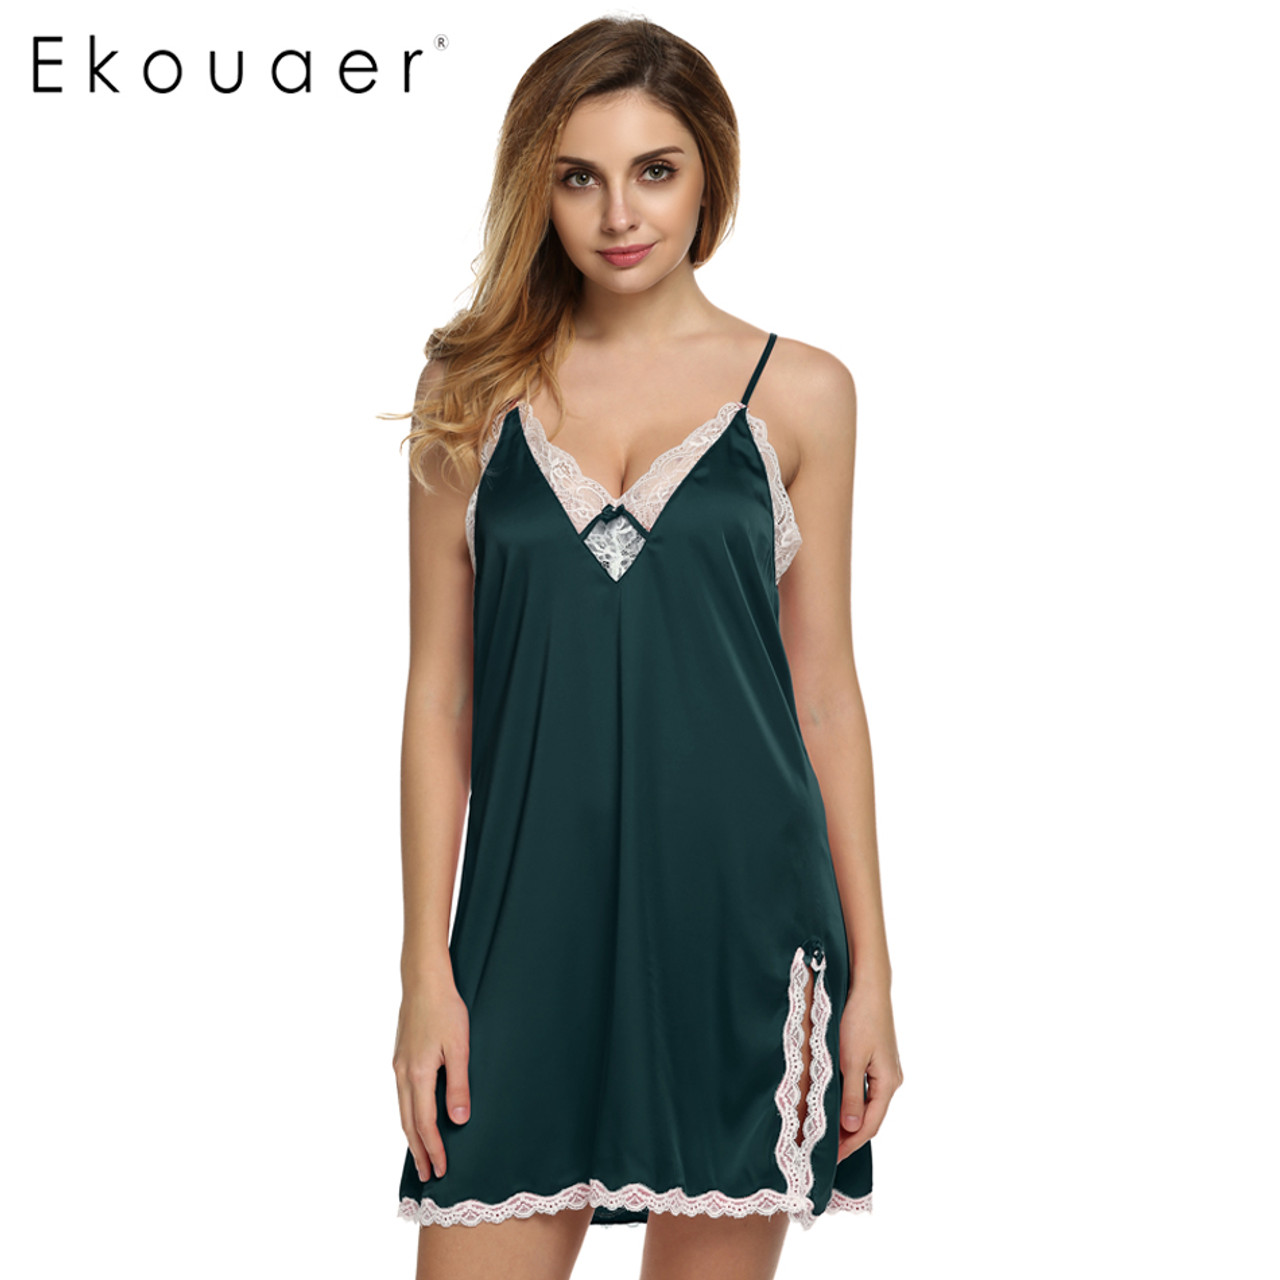 edf4f3098c9 Ekouaer sleep dress Sexy Satin Sleepwear Silk Nightgown Women Nightdress  Sexy Lingerie Plus Size S M L XL ...